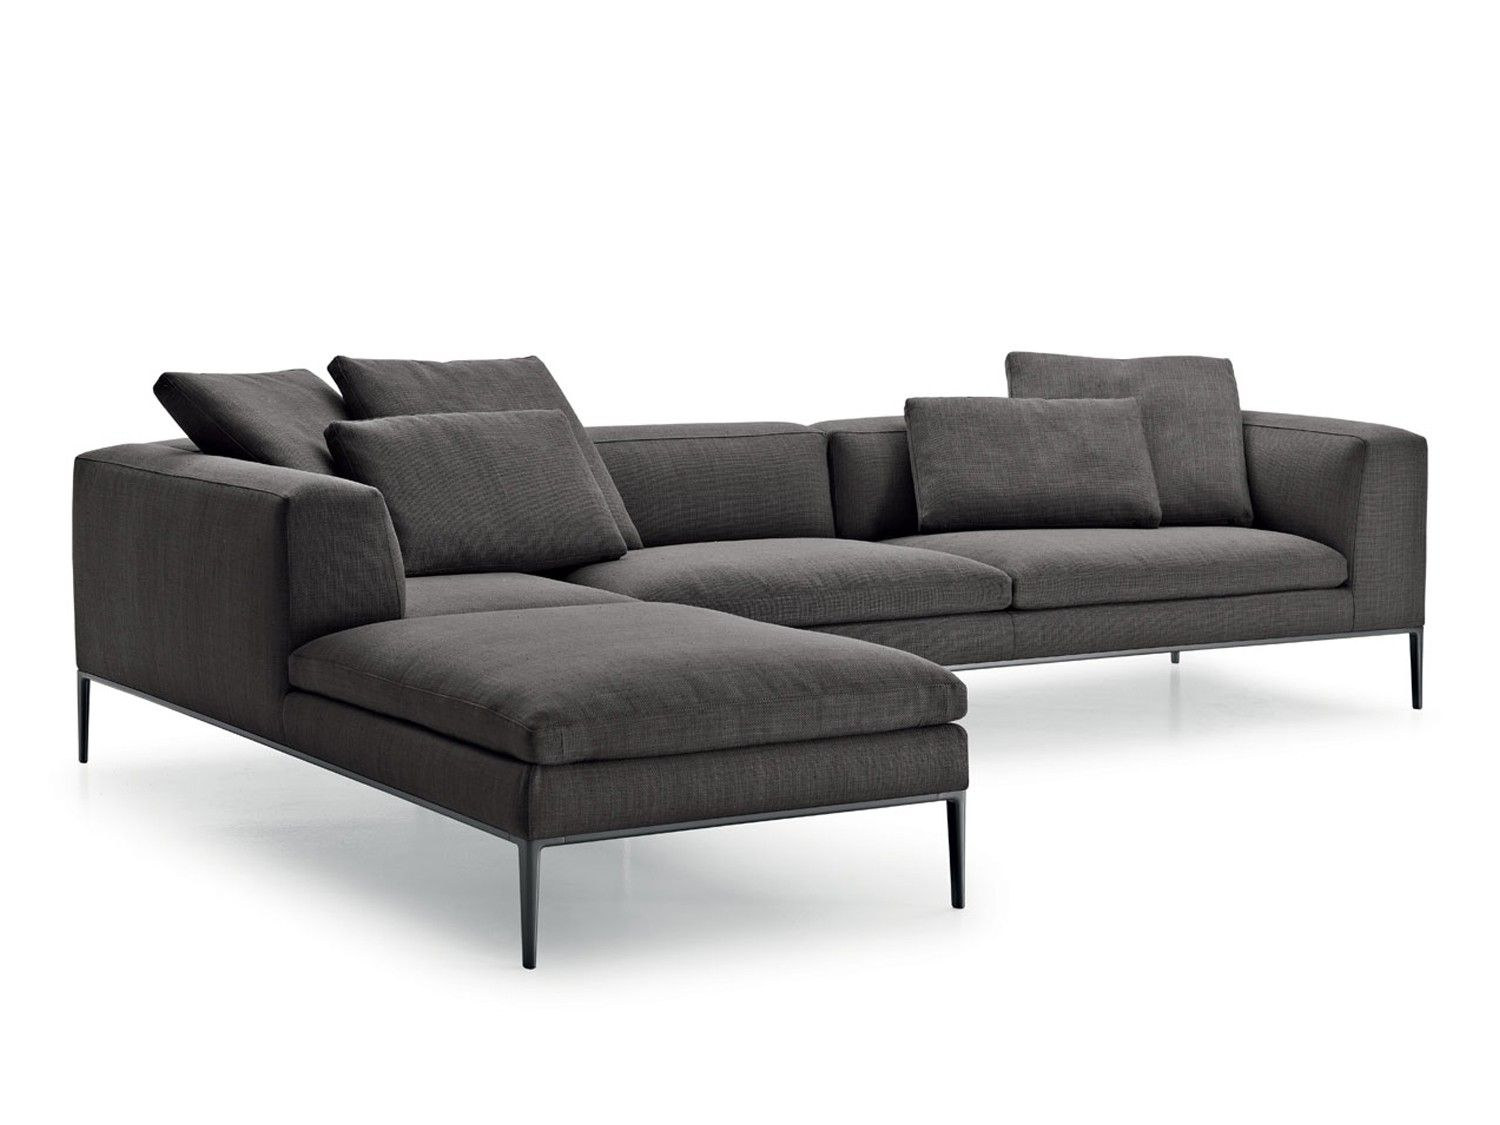 B b italia michel corner sofa by antonio citterio for Mobilia italia